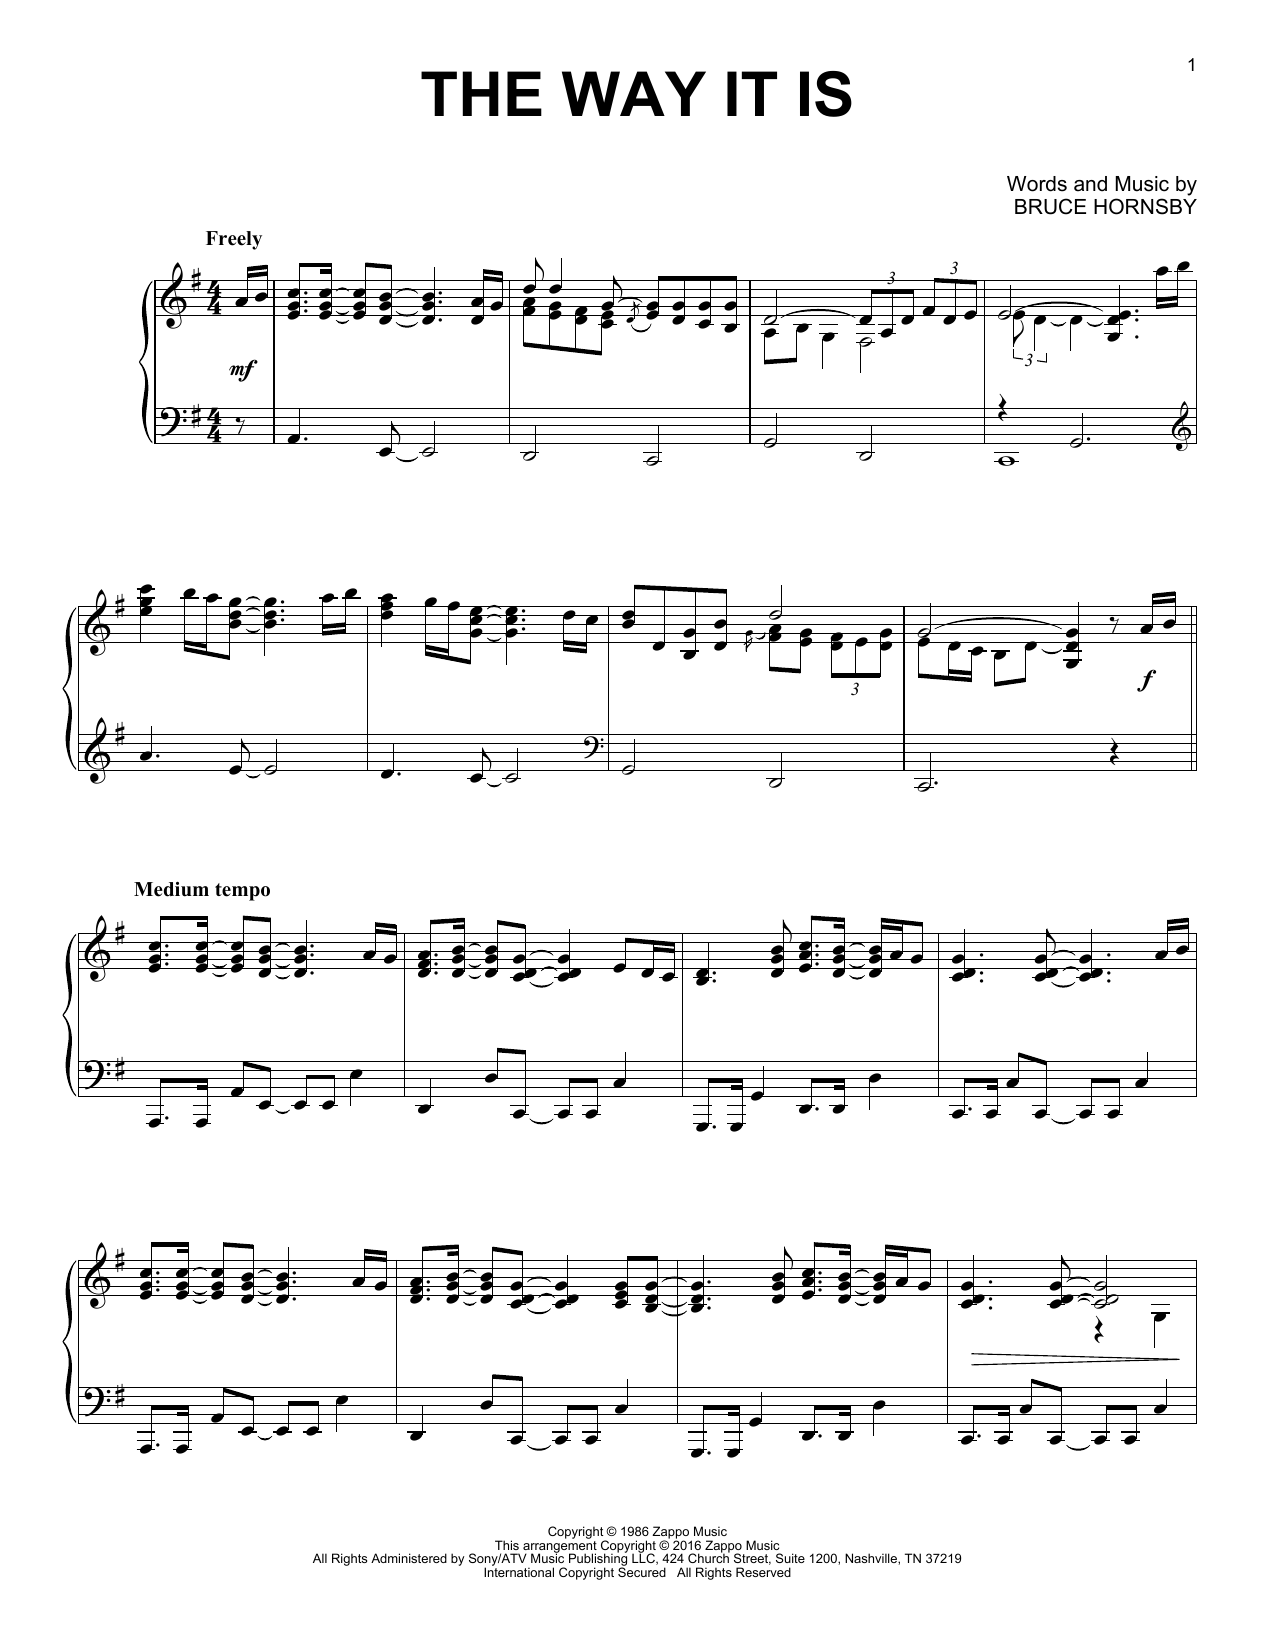 The Way It Is Sheet Music